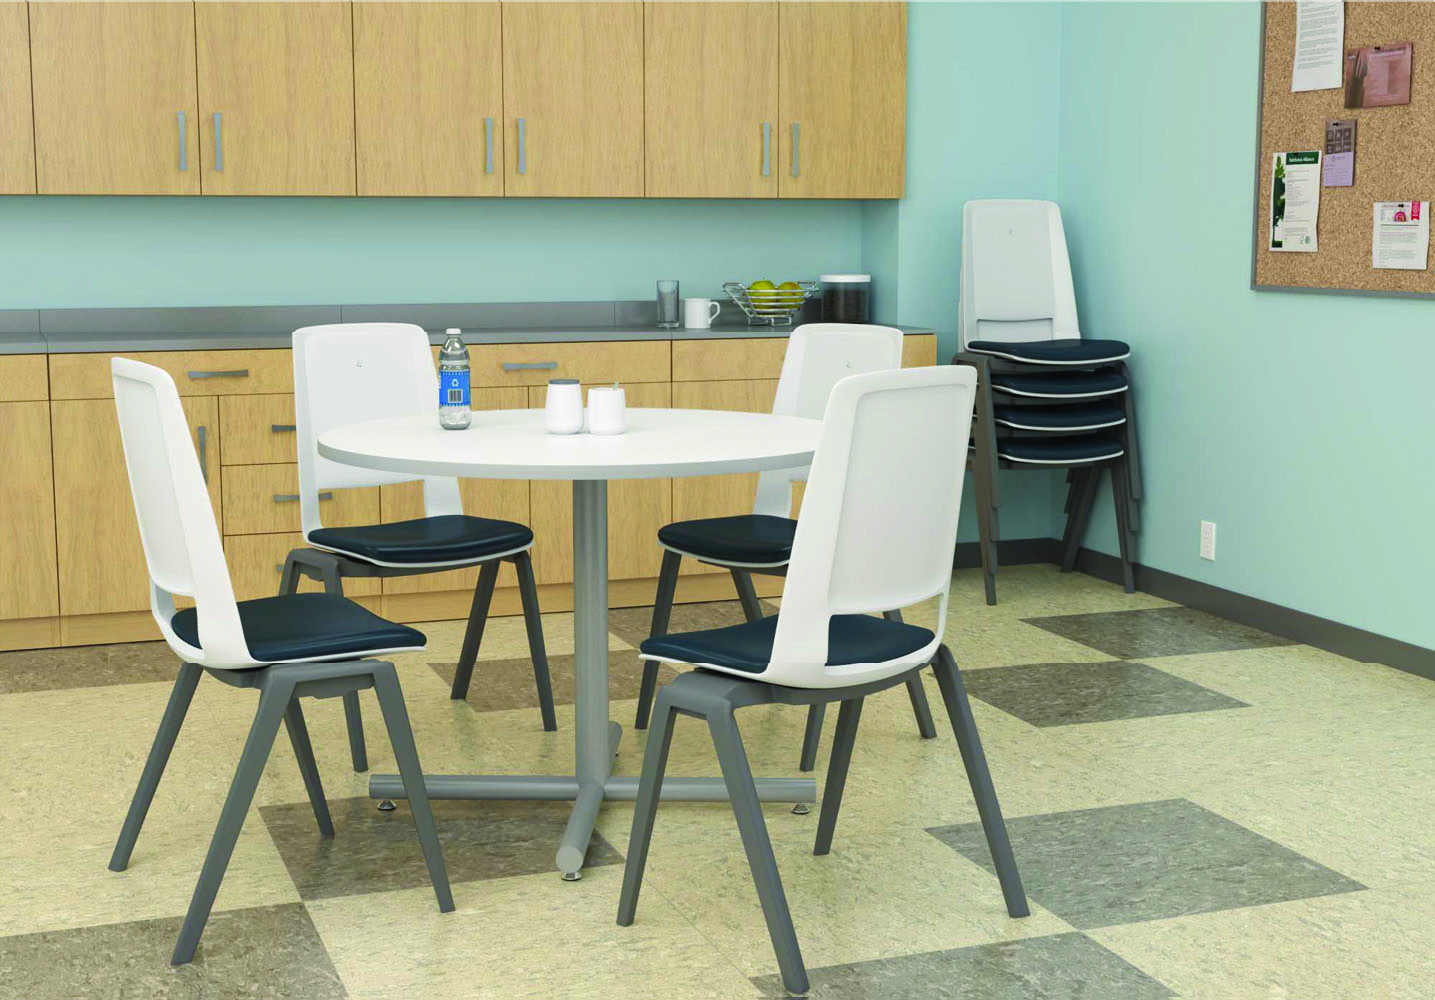 Matching Office Desk Accessories Cafeteria Tables And Chairs Break Room Furniture